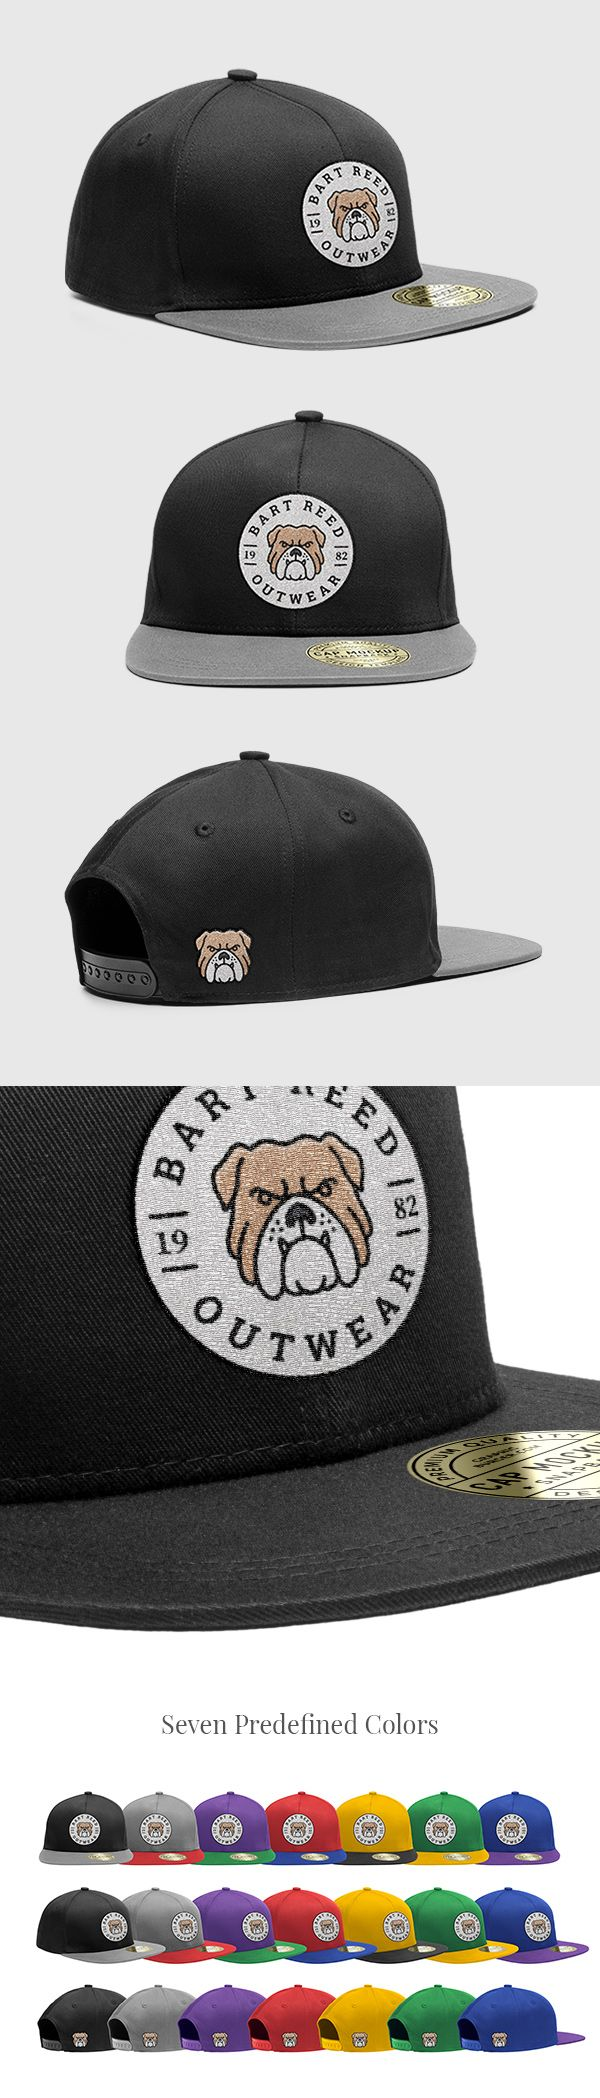 Hi friends! Today we have for you a Snapback Cap PSD MockUp with two  embroidered elements plus front and angle views. It includes smart layers so it allows you to apply your designs with ease in no time. The mockup comes with 7 predefined colors for the cap, get it and showcase your apparel designs. Hope you love it!